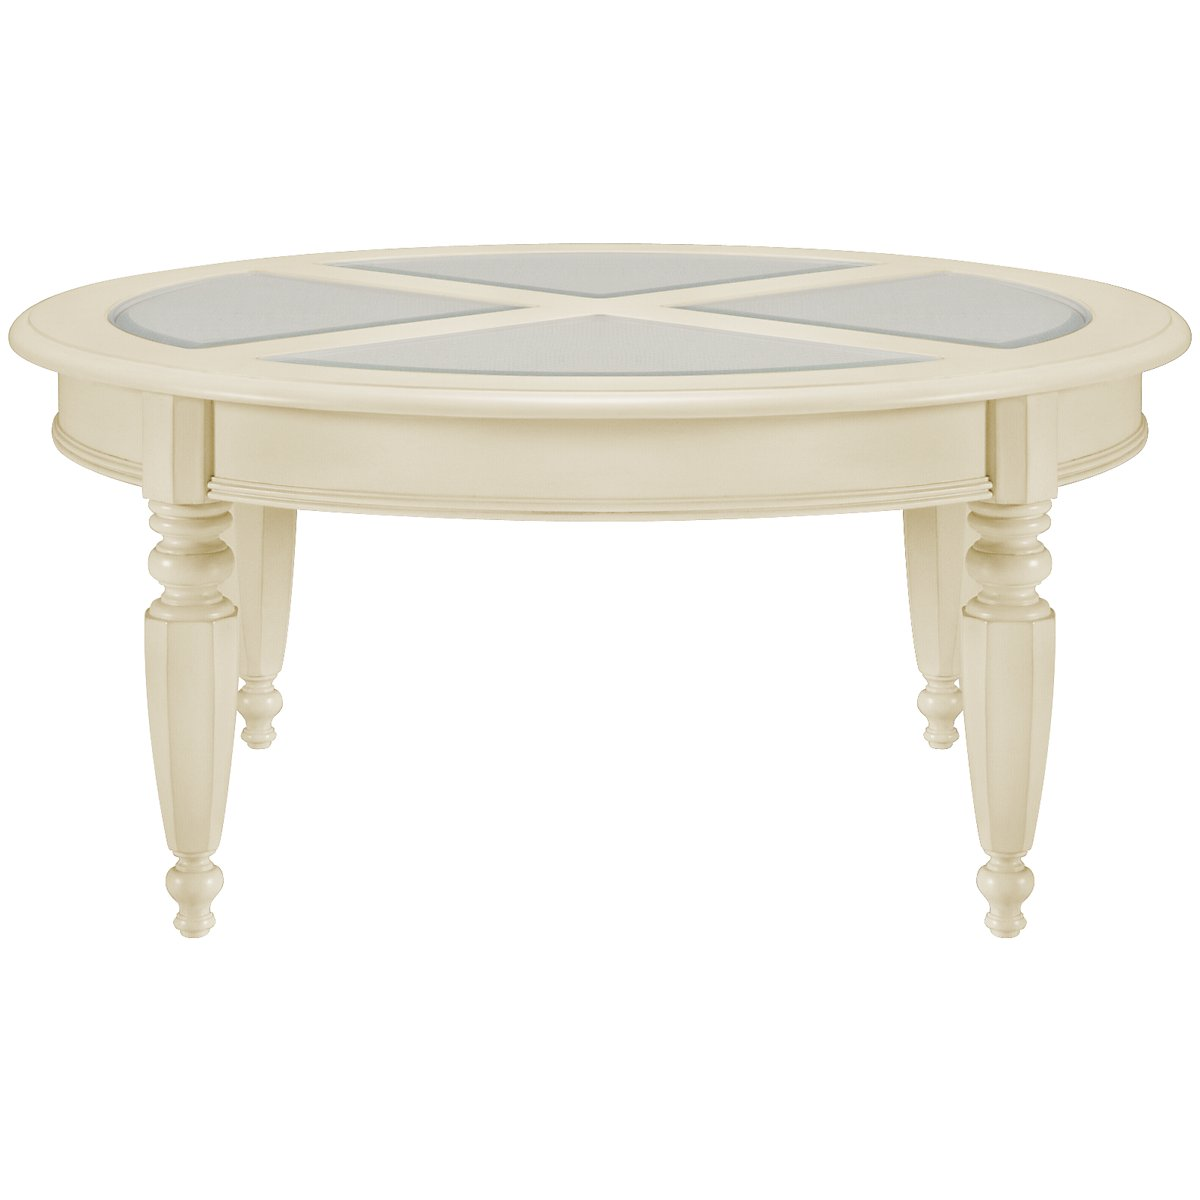 Claire White Round Coffee Table